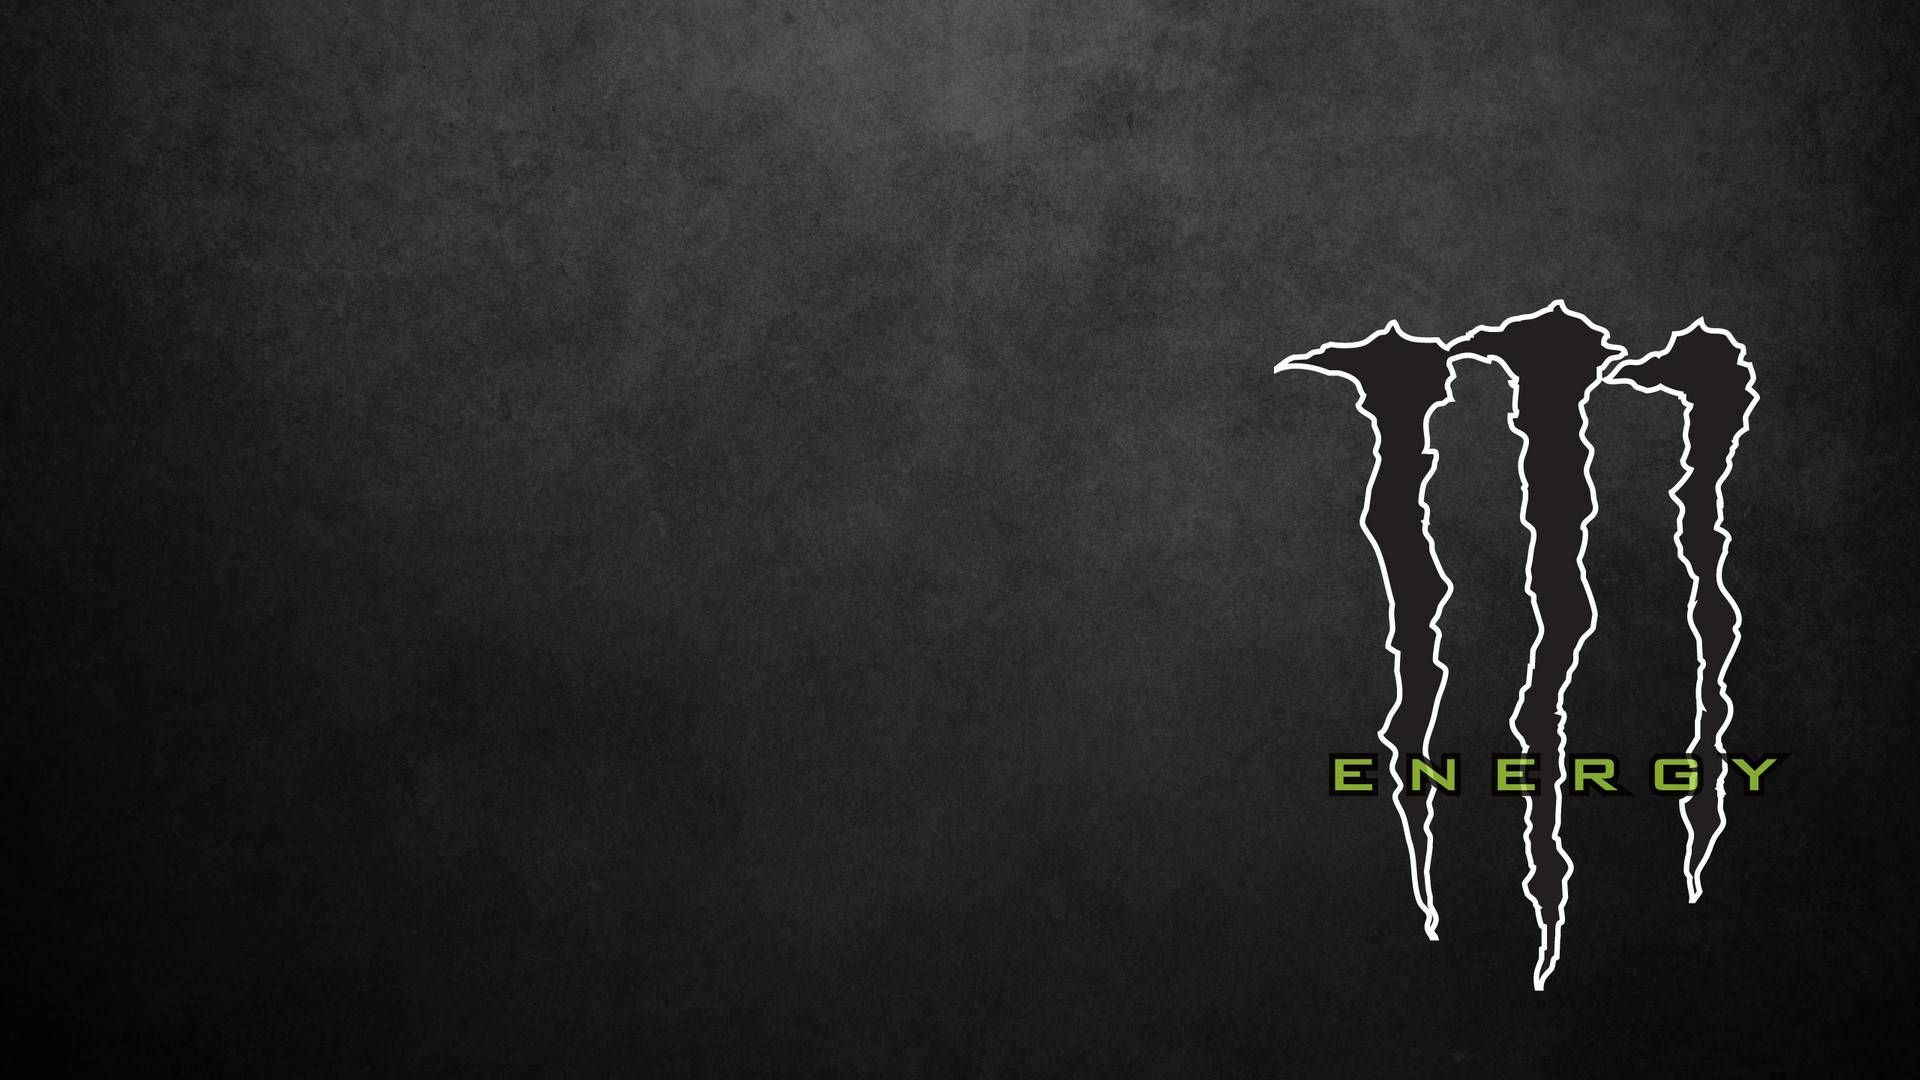 Monster energy logo black and white df pinterest monsters free wallpaper monster energy logo black and white thecheapjerseys Gallery